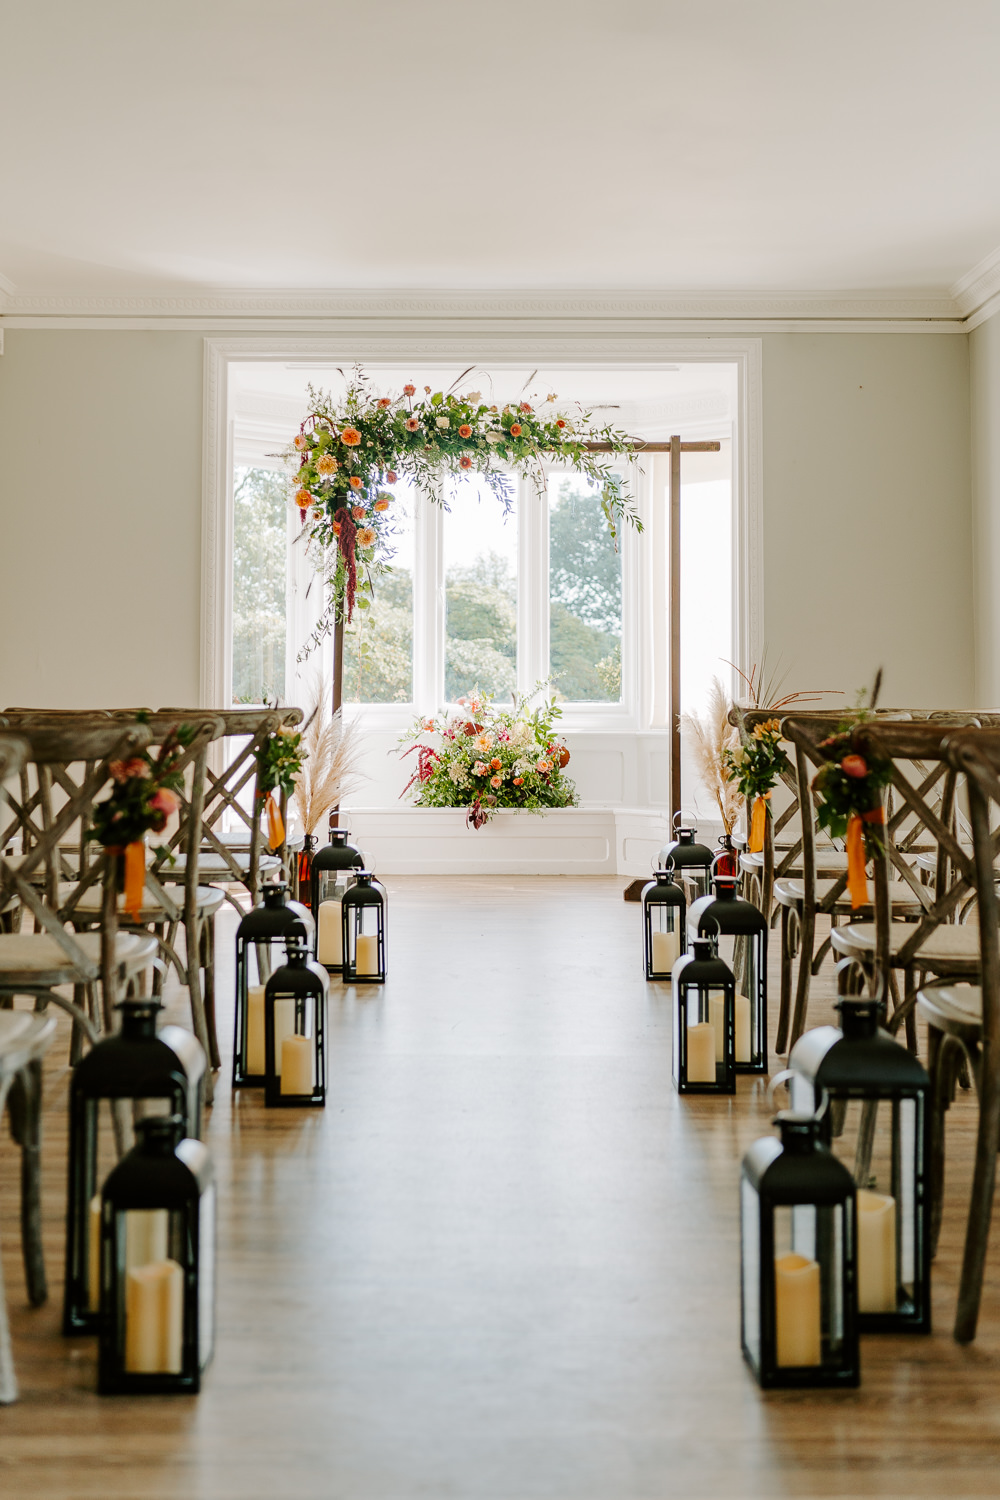 Flower Arch Ceremony Aisle Backdrop Lantern Candles Contemporary Wedding Ideas Chloe Ely Photography